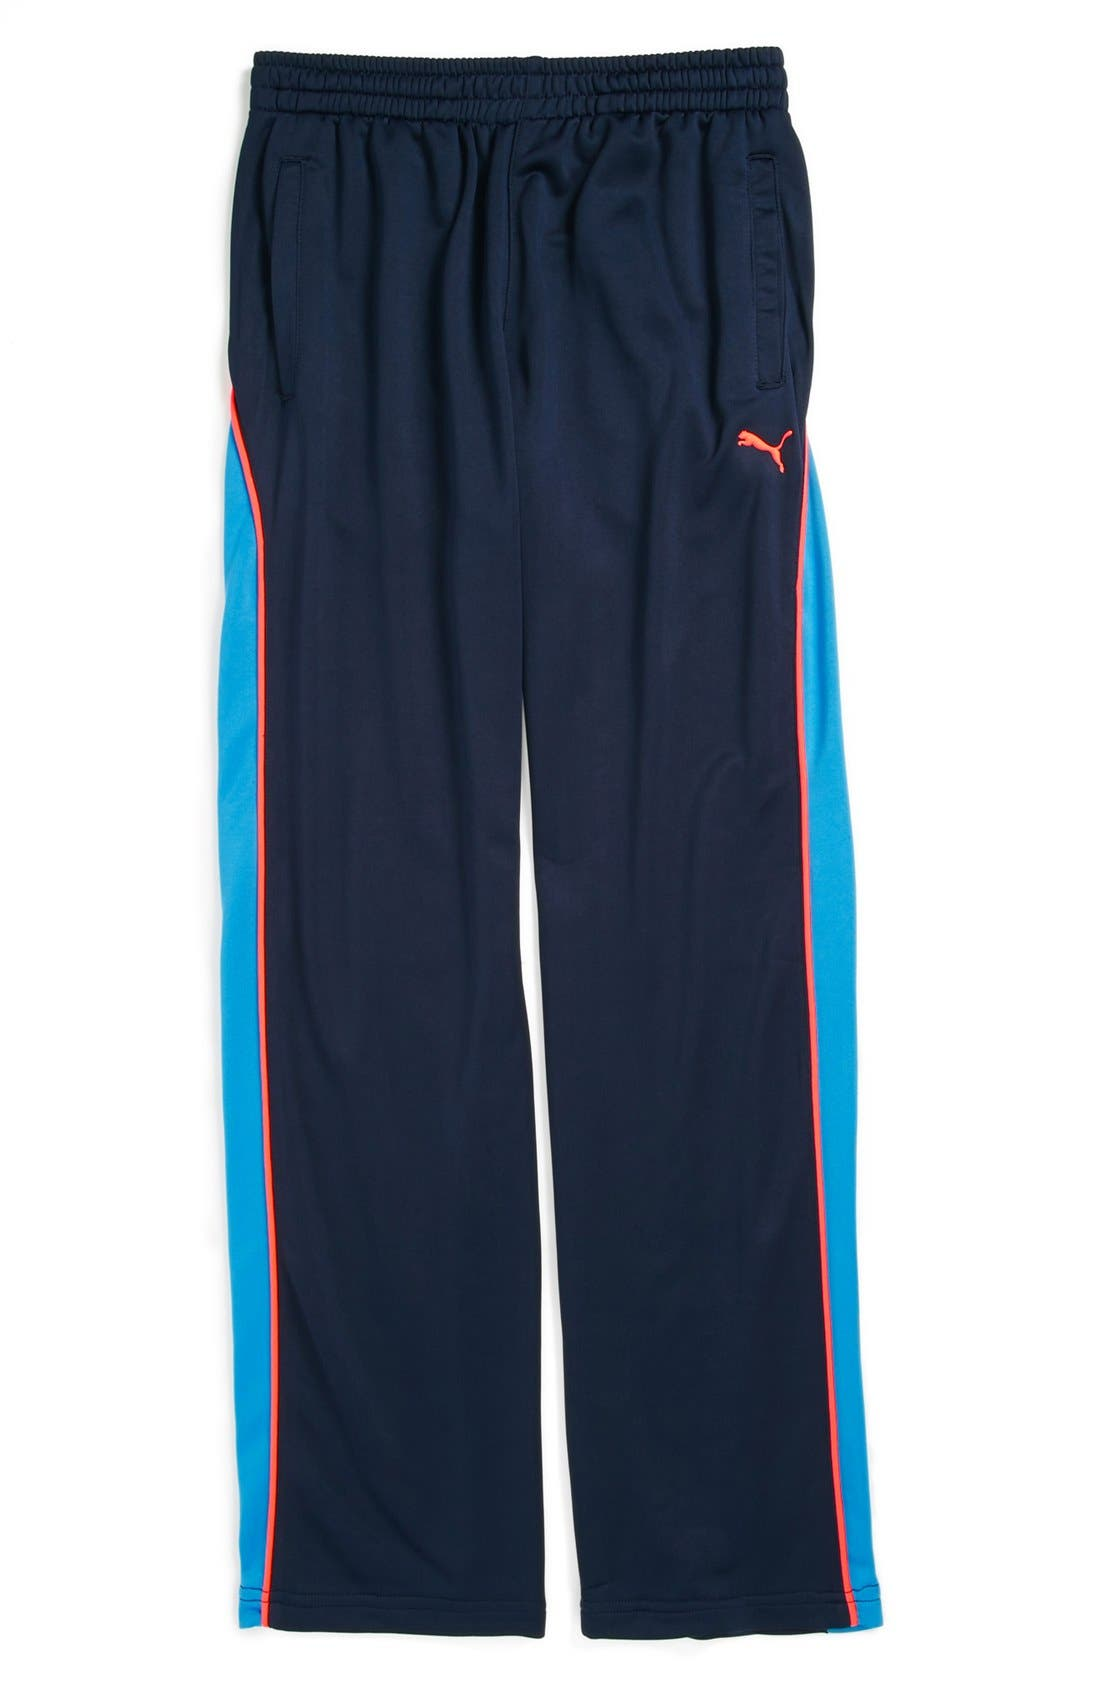 Alternate Image 1 Selected - PUMA 'Ability' Track Pants (Big Boys)